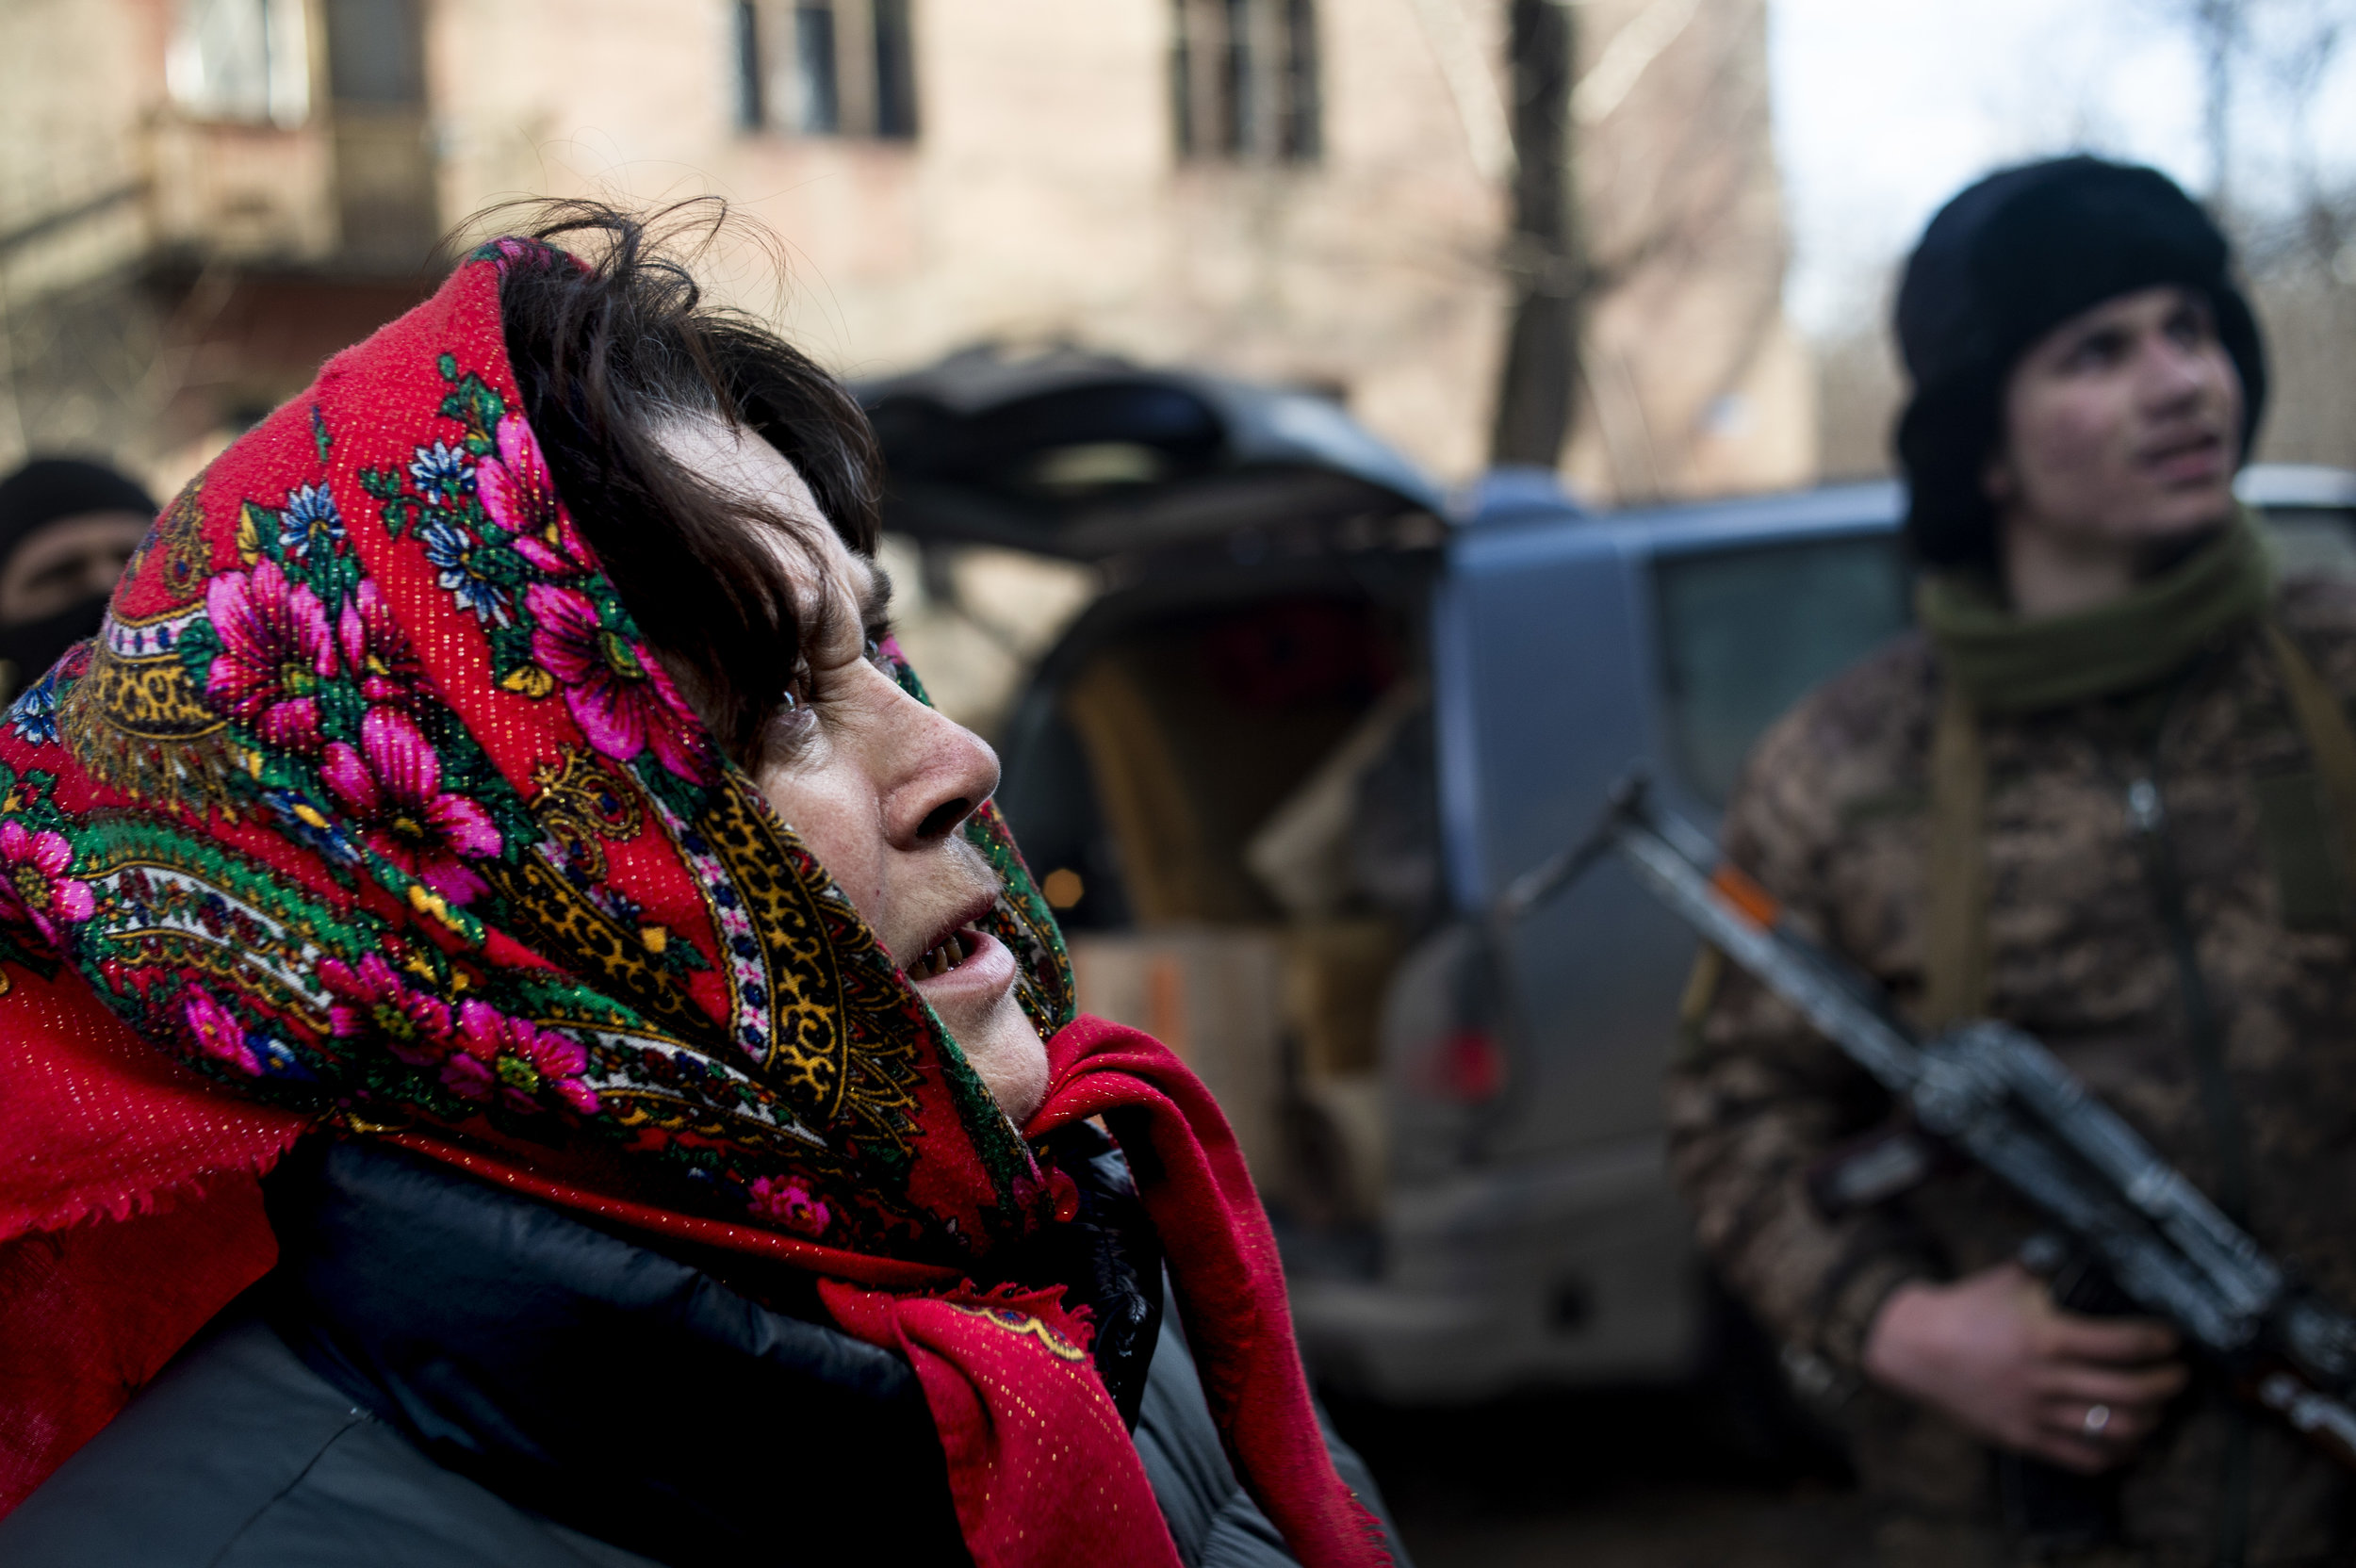 A woman who lived in the apartment building where soldiers of the Ukrainian military lived keeps careful watch as her belongings are loaded into the back of a flatbed truck. Following several days of heavy shelling on the building, several civilians decided to move several kilometers away from Point Zero.